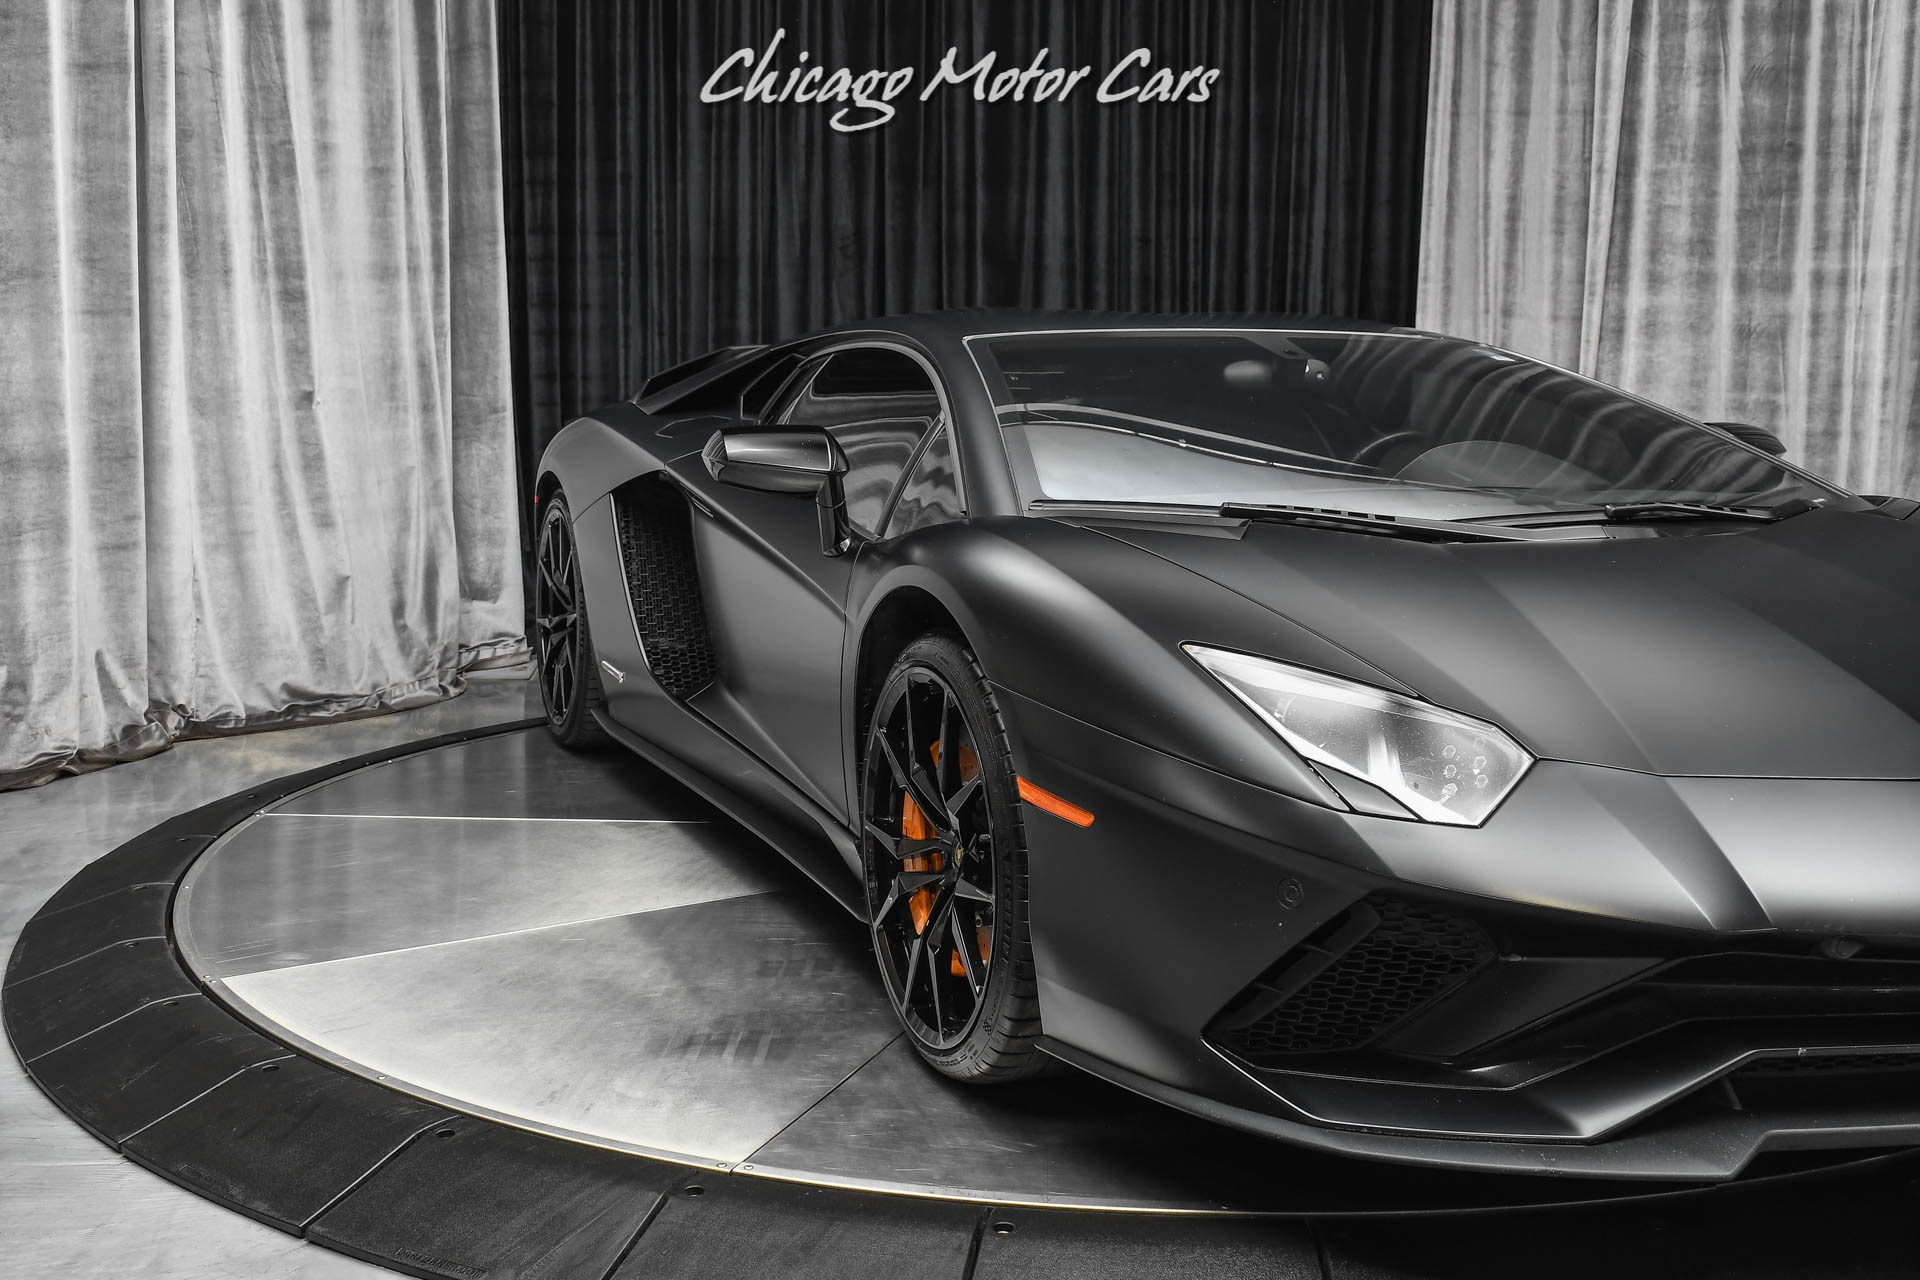 Used-2018-Lamborghini-Aventador-LP740-4-S-Coupe-HUGE-MSRP-THOUSANDS-IN-UPGRADES-ADV1-Wheels-IPE-Exhaust